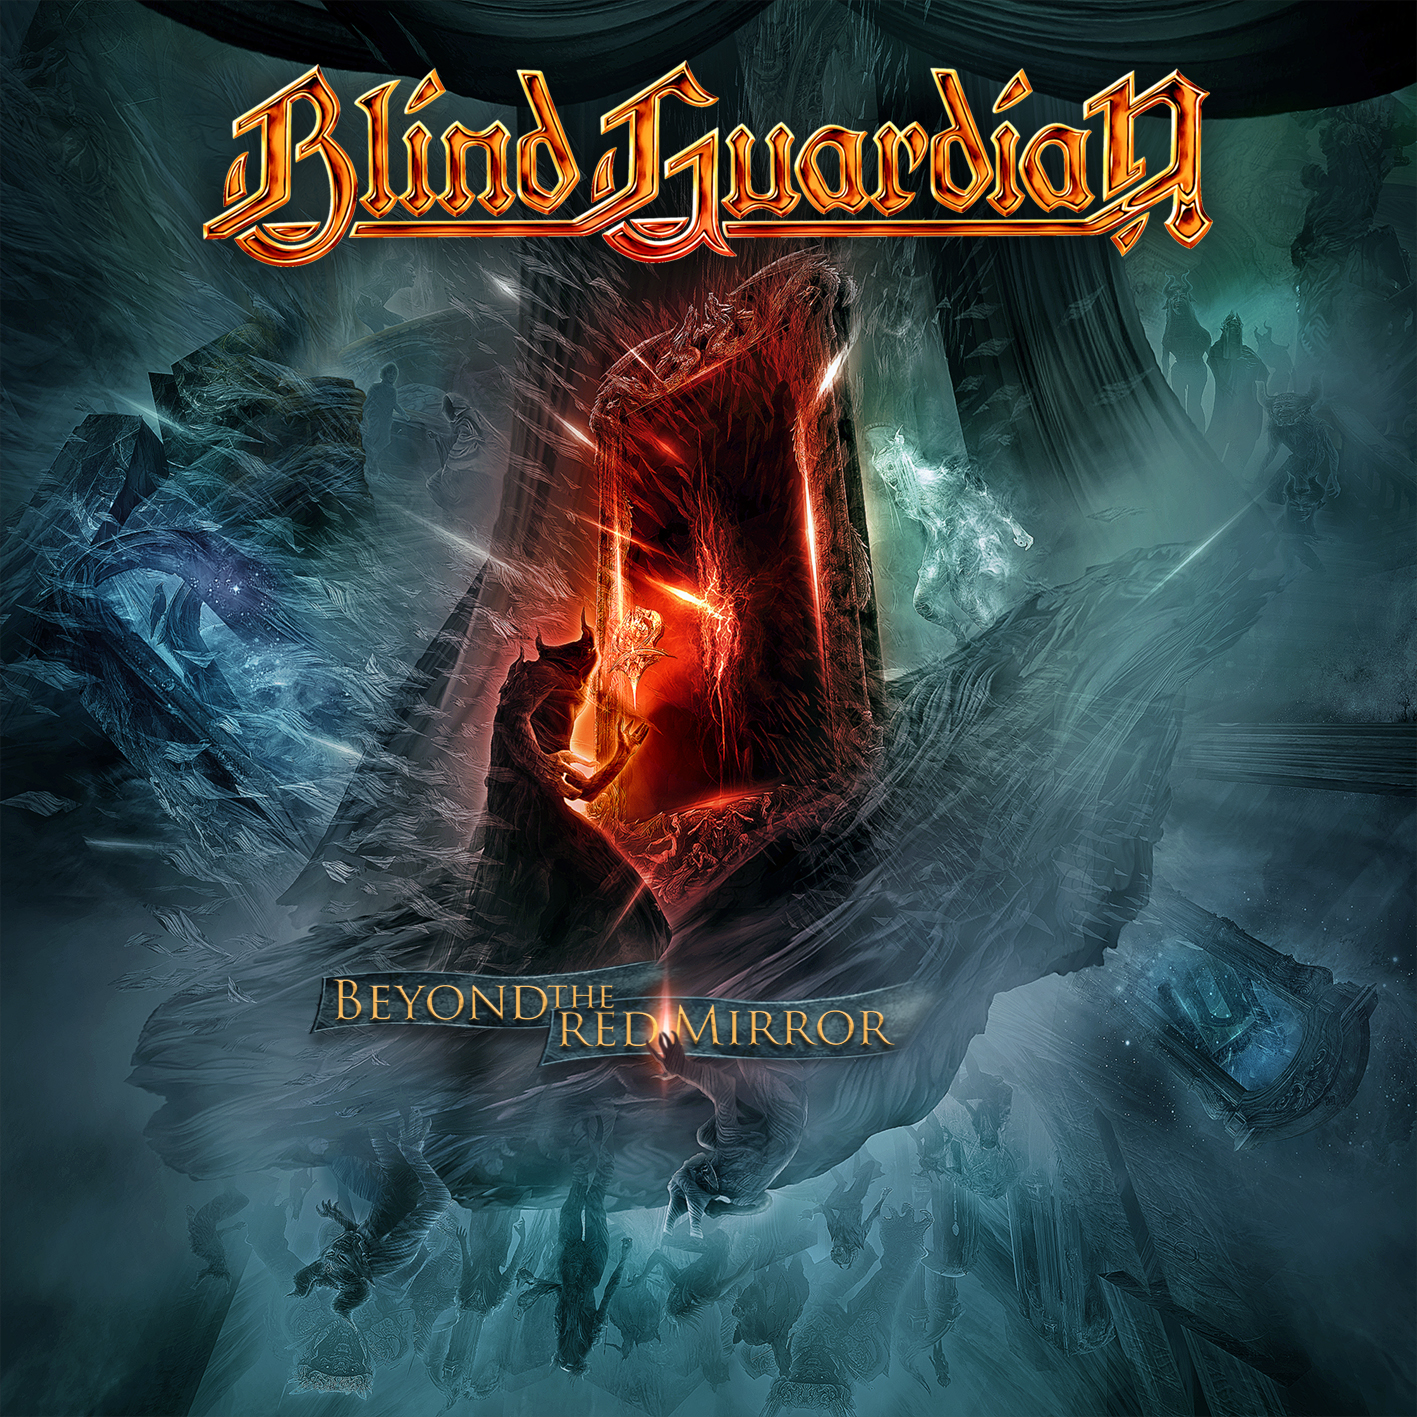 Beyond the red mirror en blind for Mirror mirror blind guardian lyrics